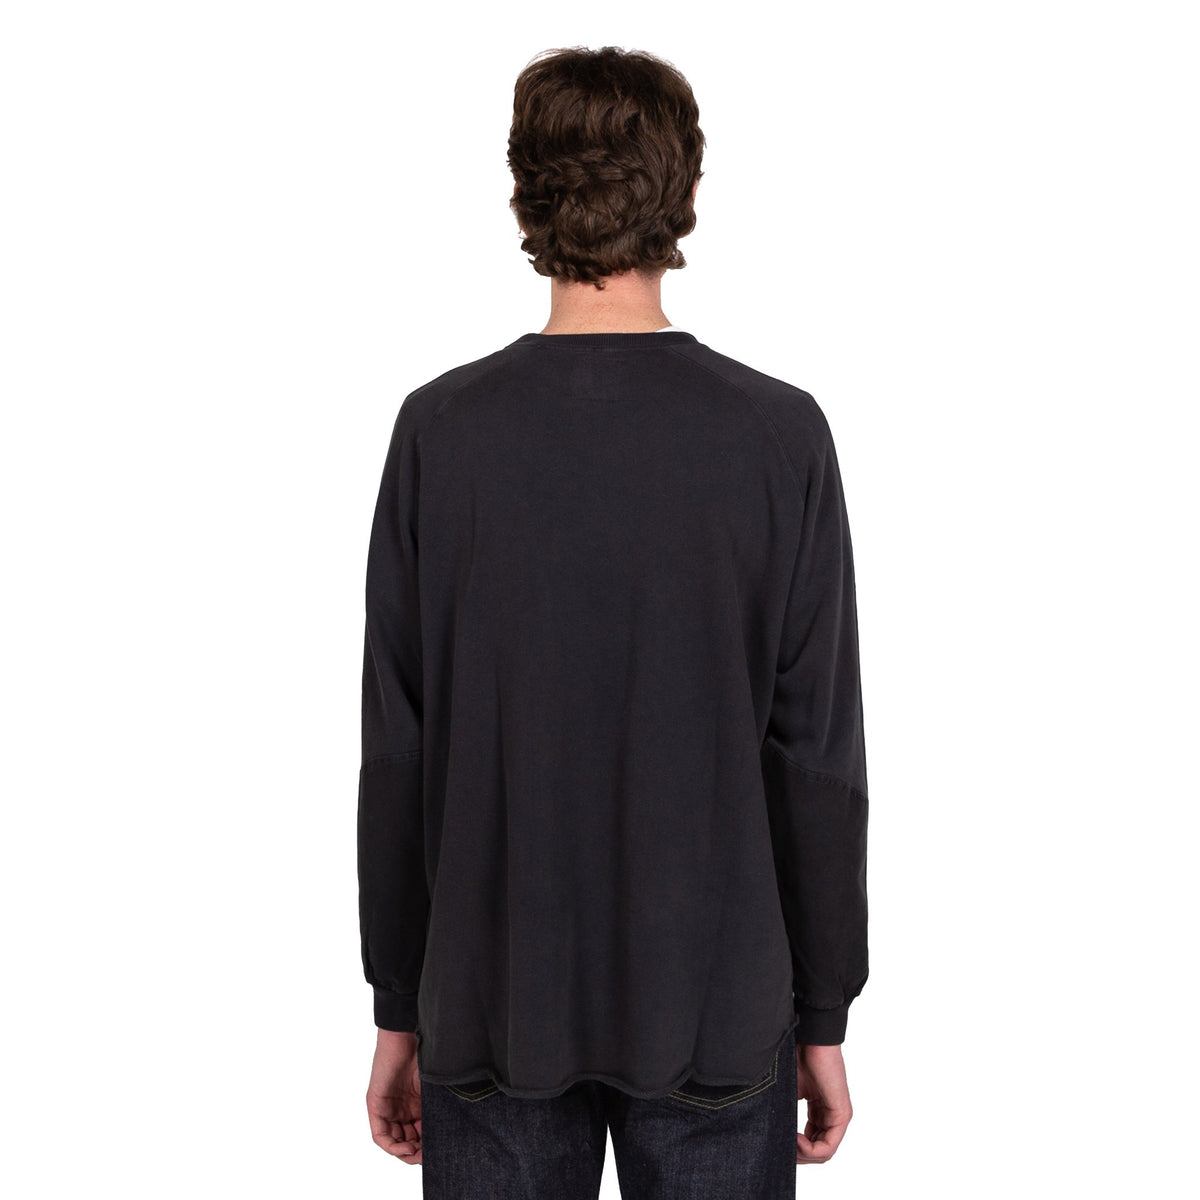 Gramicci Talecut Sweatshirt in Deep Ink sweater all weather outer wear